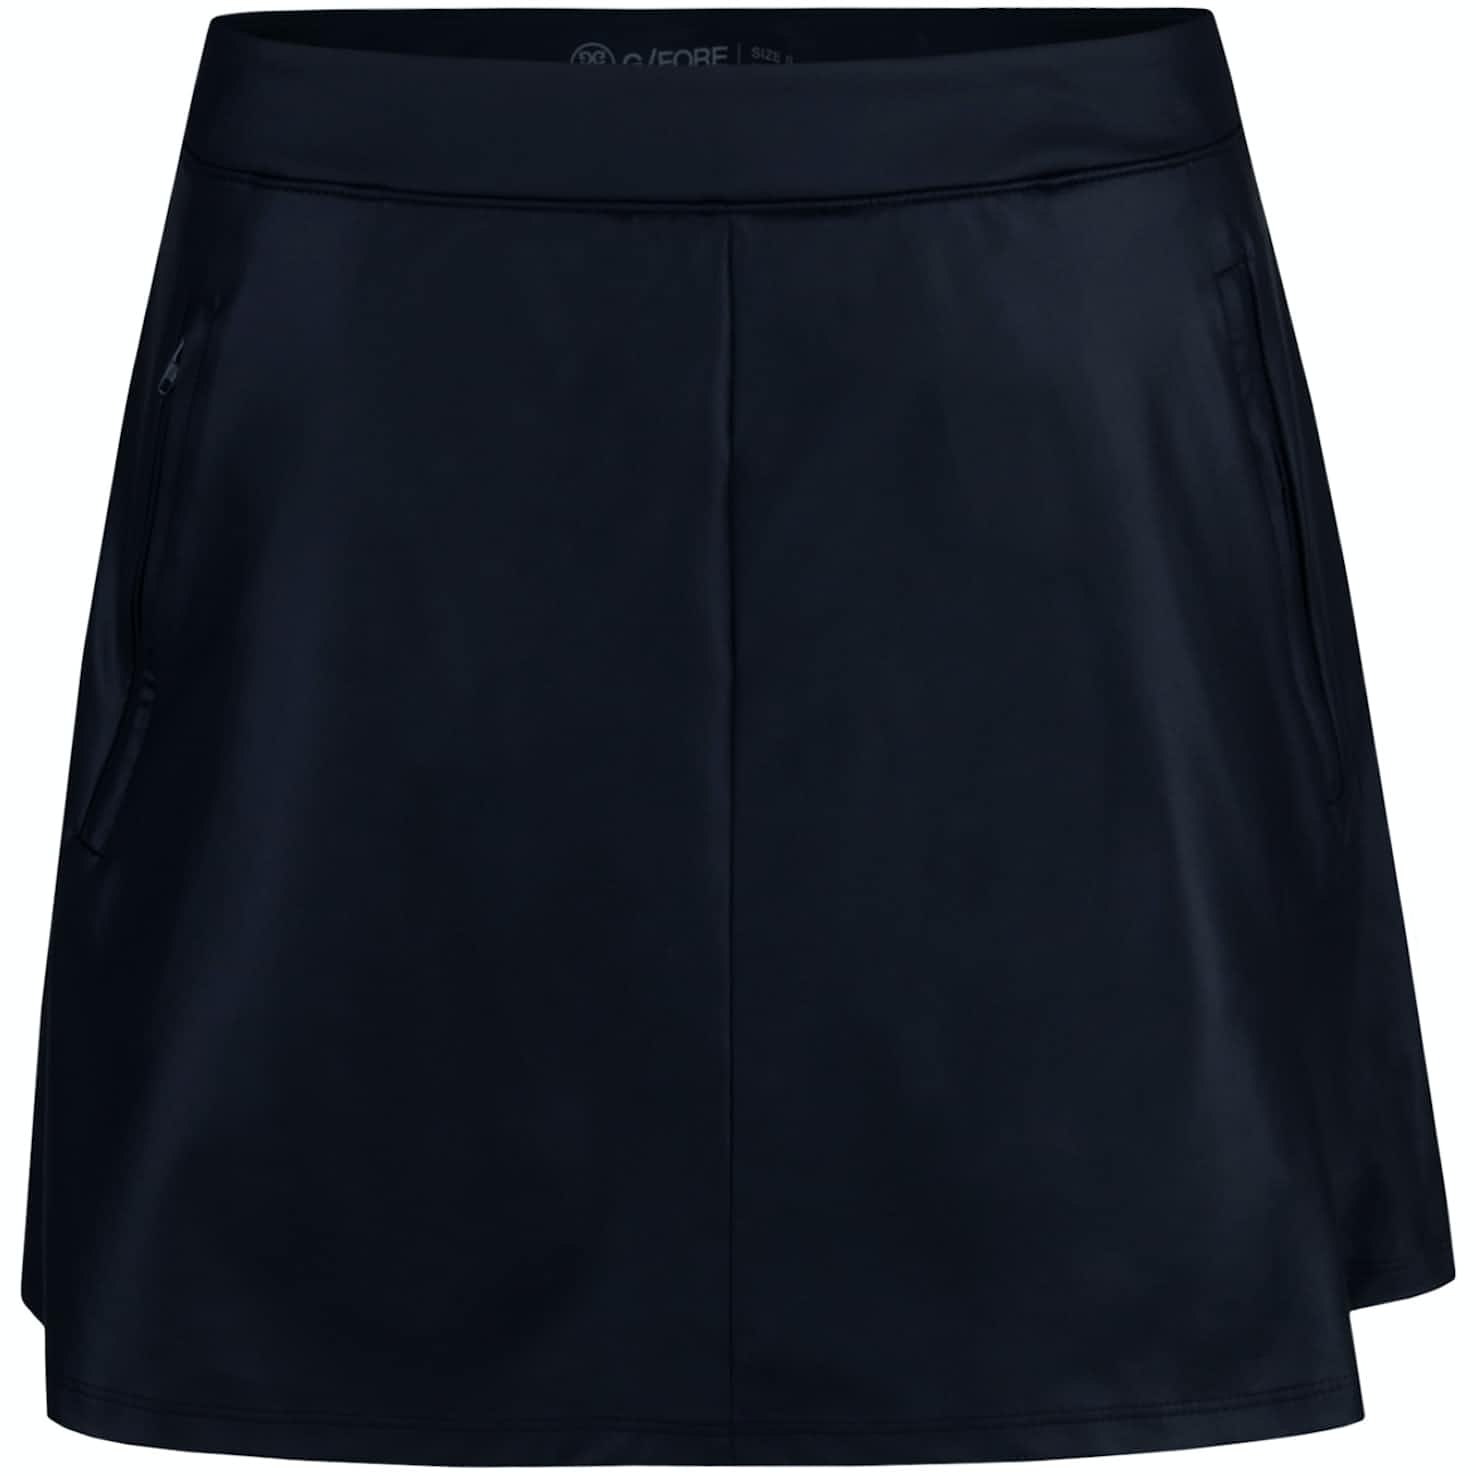 "Womens Effortless Skort Twilight 15"" - 2020"